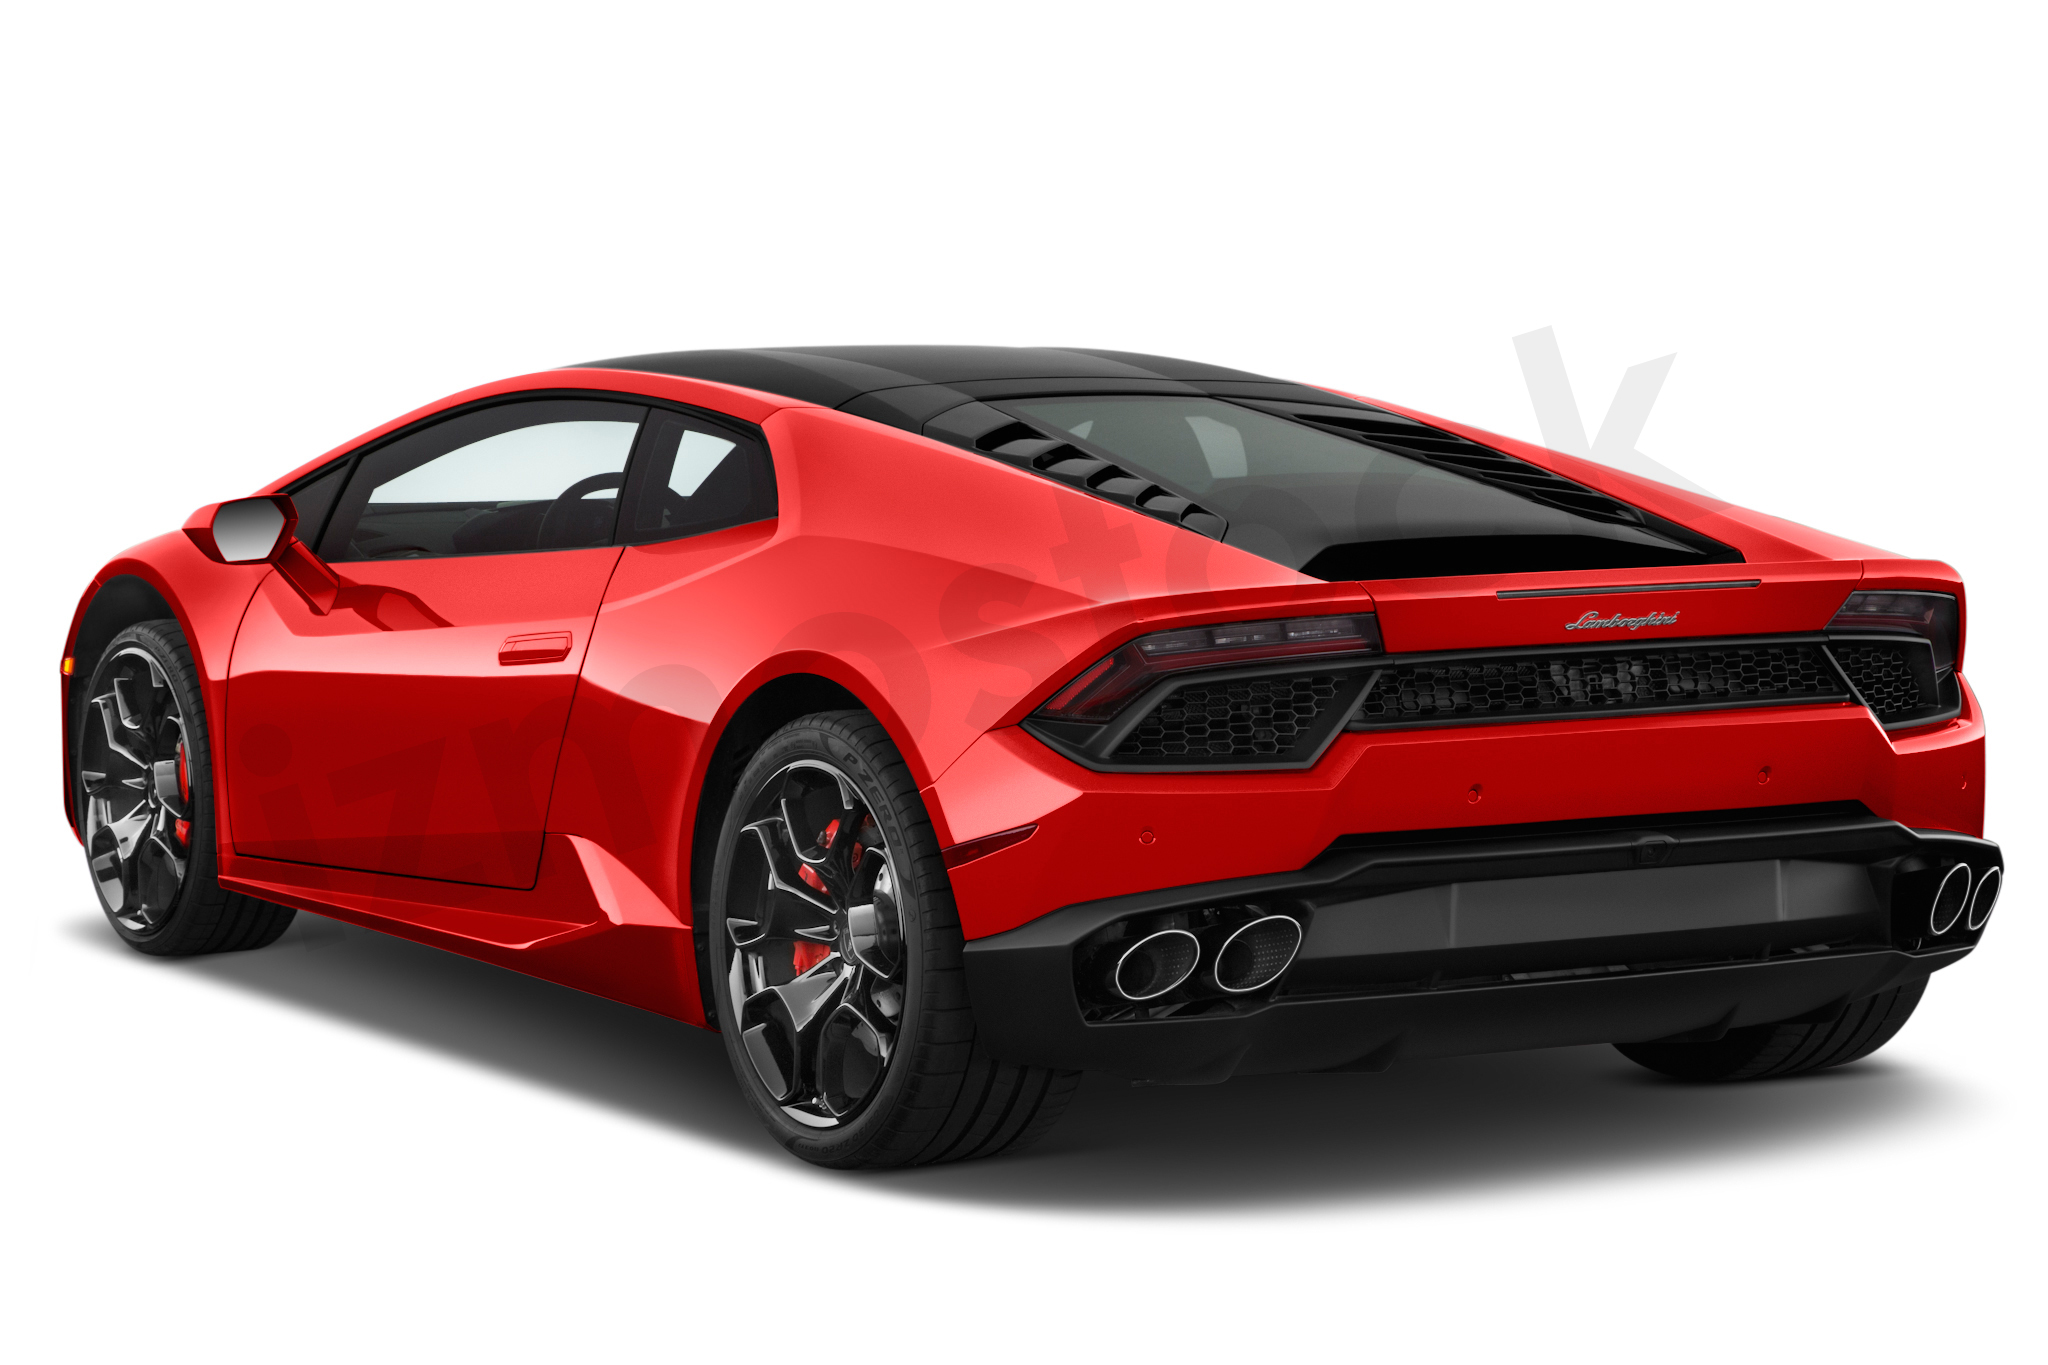 Road Rocket: The 2017 Lamborghini Huracan Images, Specs ...